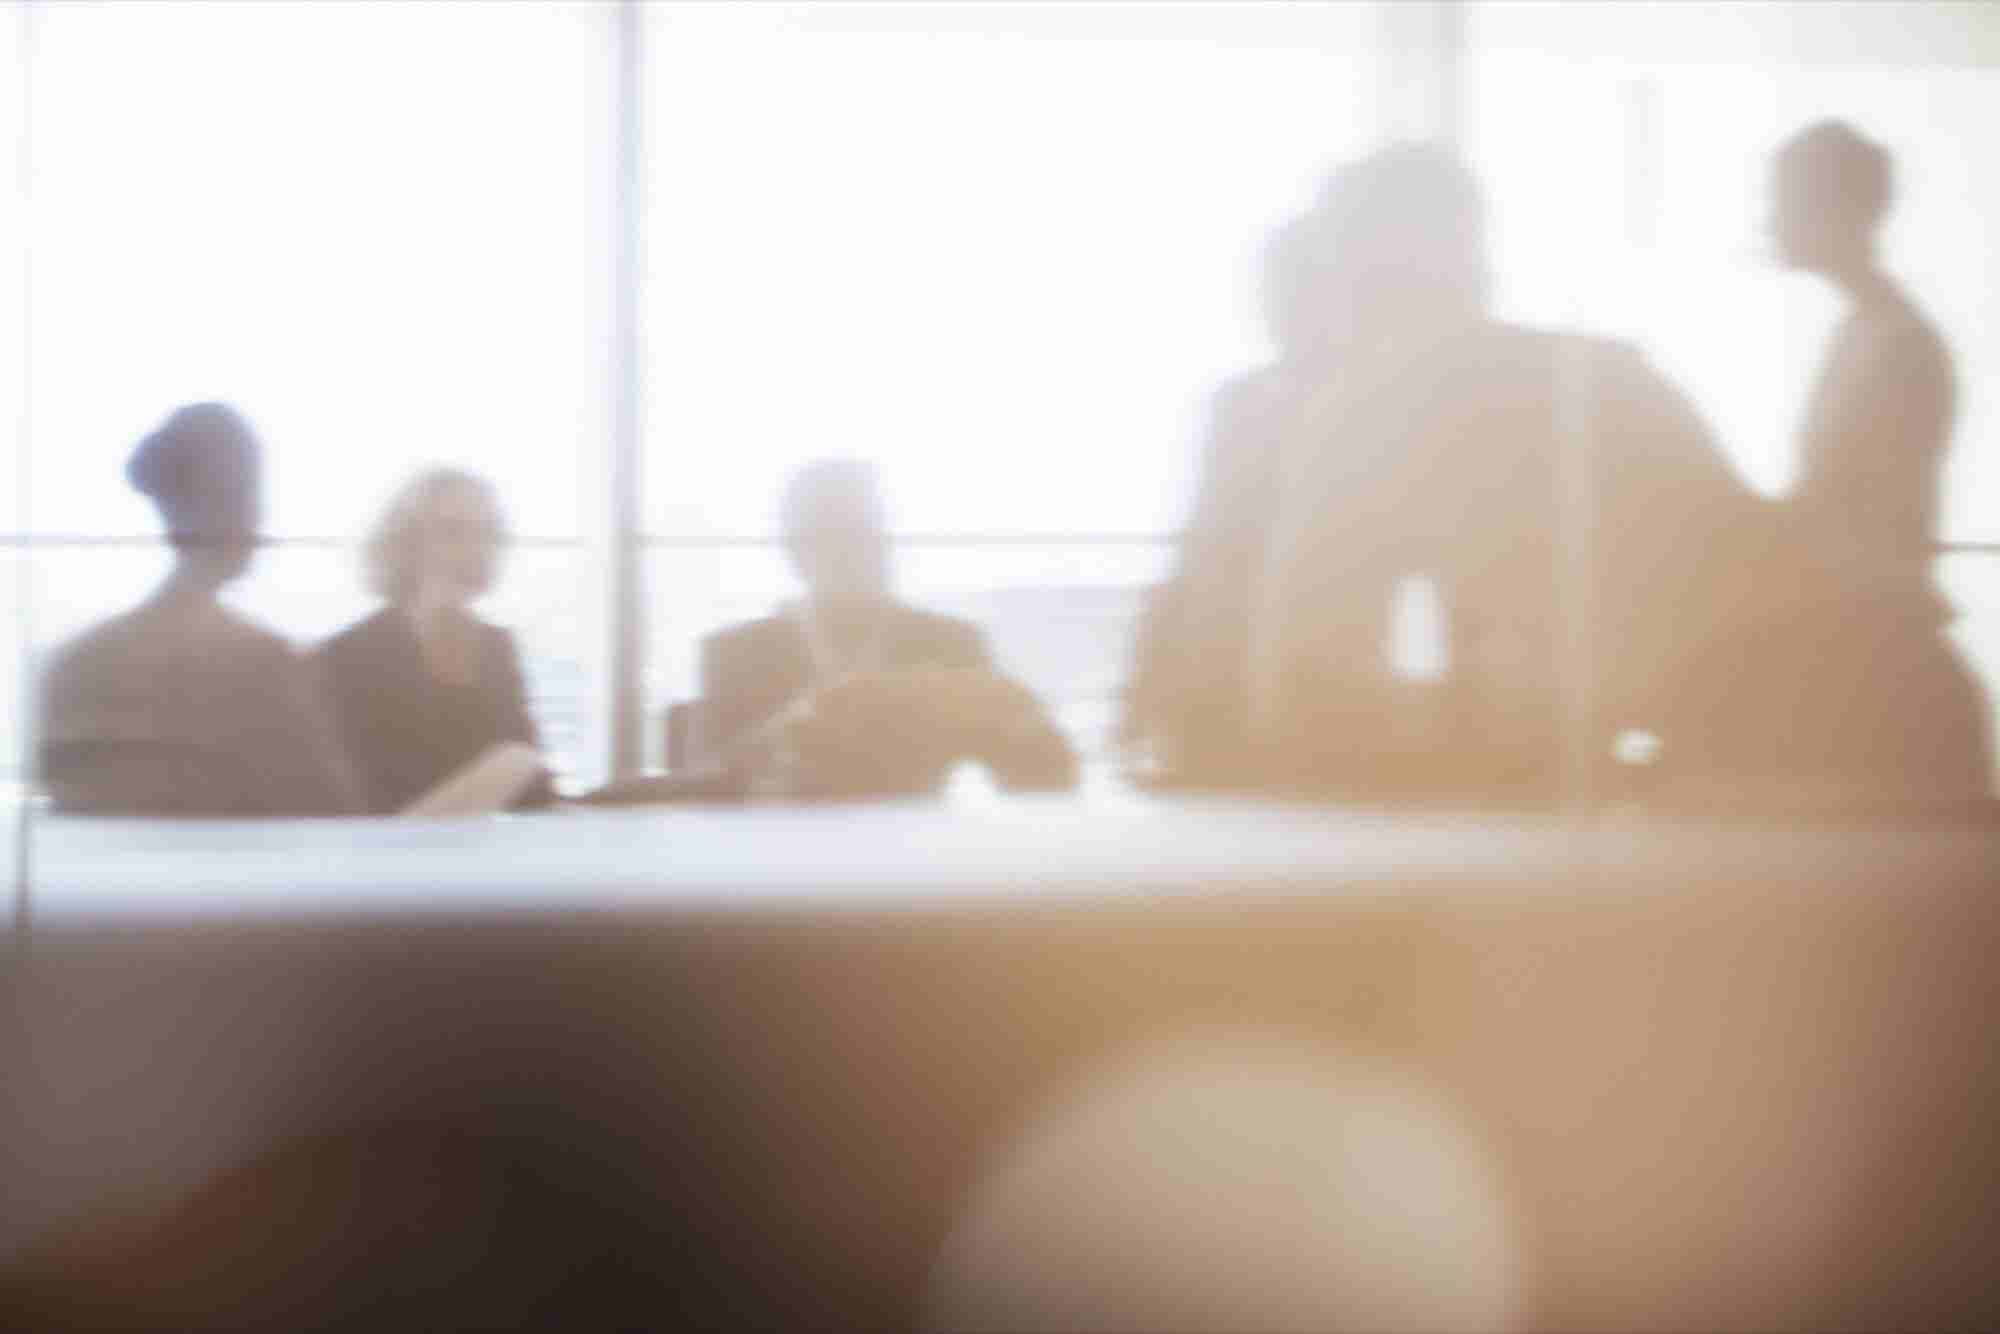 Want to Take Your Business to the Next Level? Consider Establishing a Board of Directors.